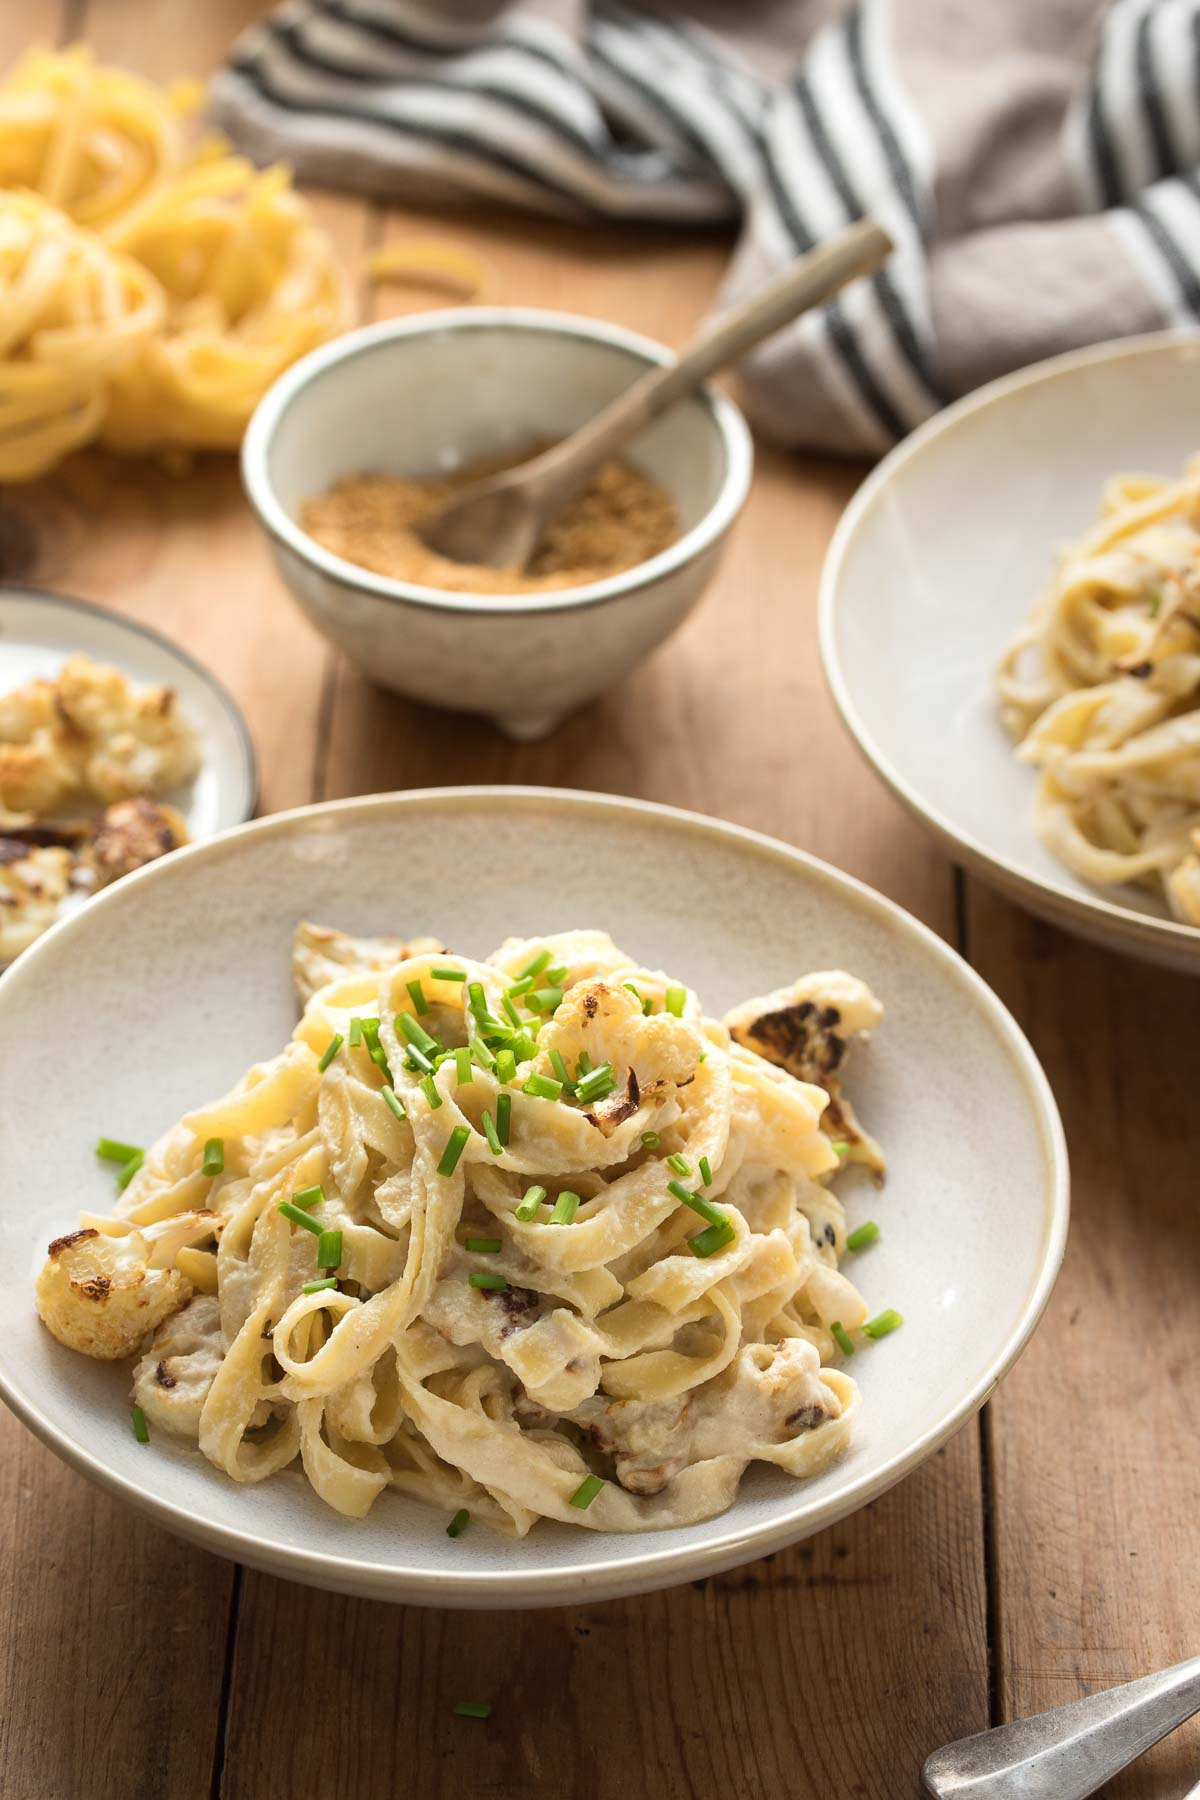 Vegan Fettuccine Alfredo with Roasted Cauliflower with Cashew Sauce